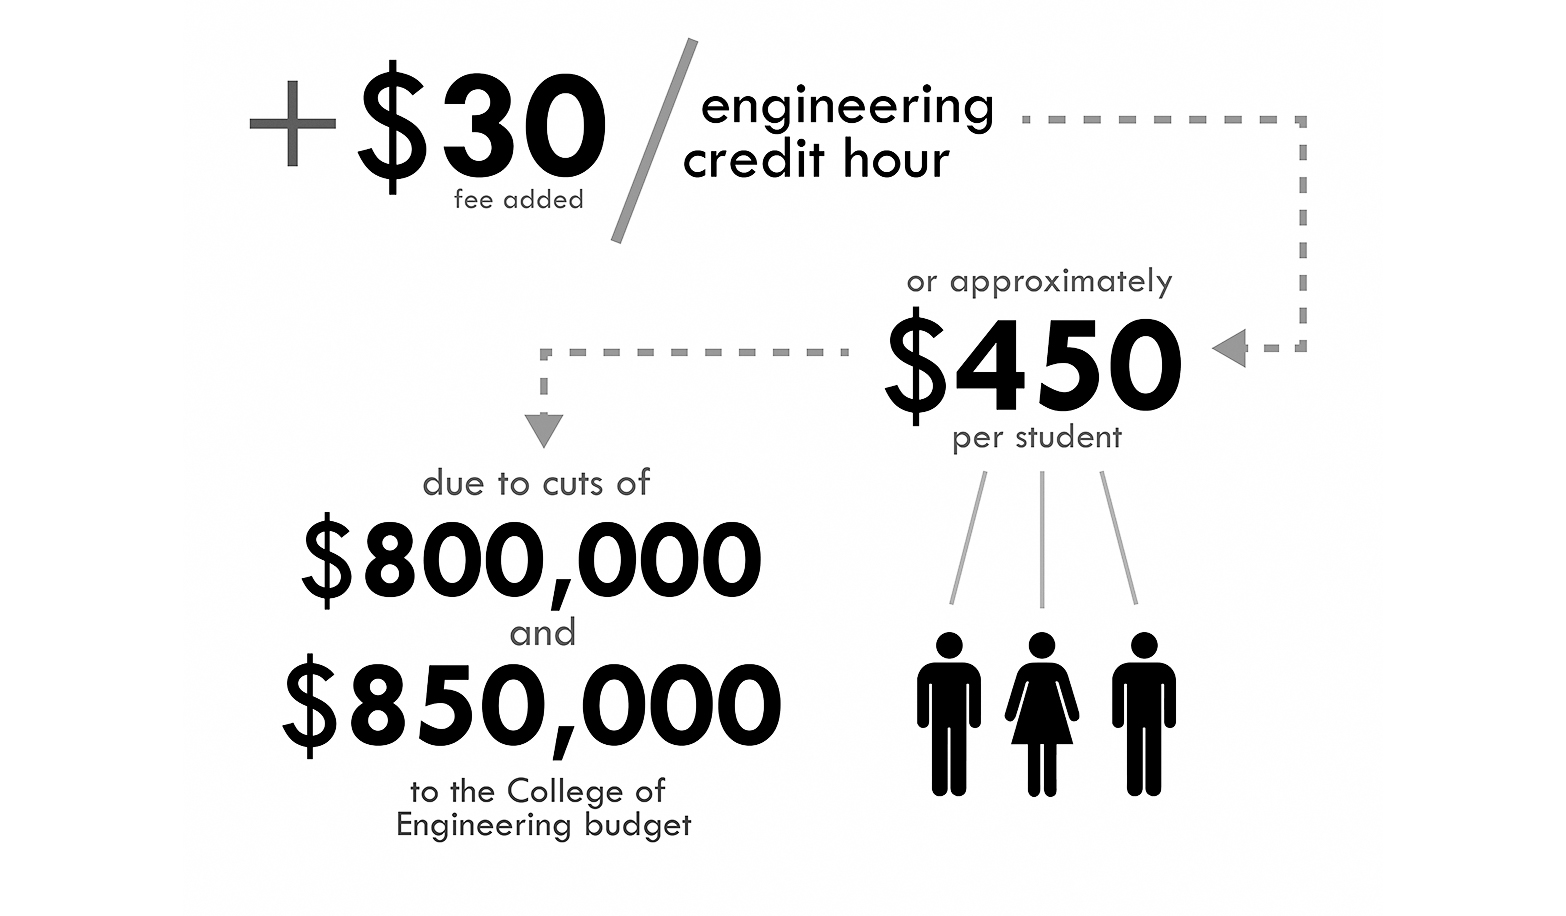 College Of Engineering Increases Fees Amid Budget Cuts